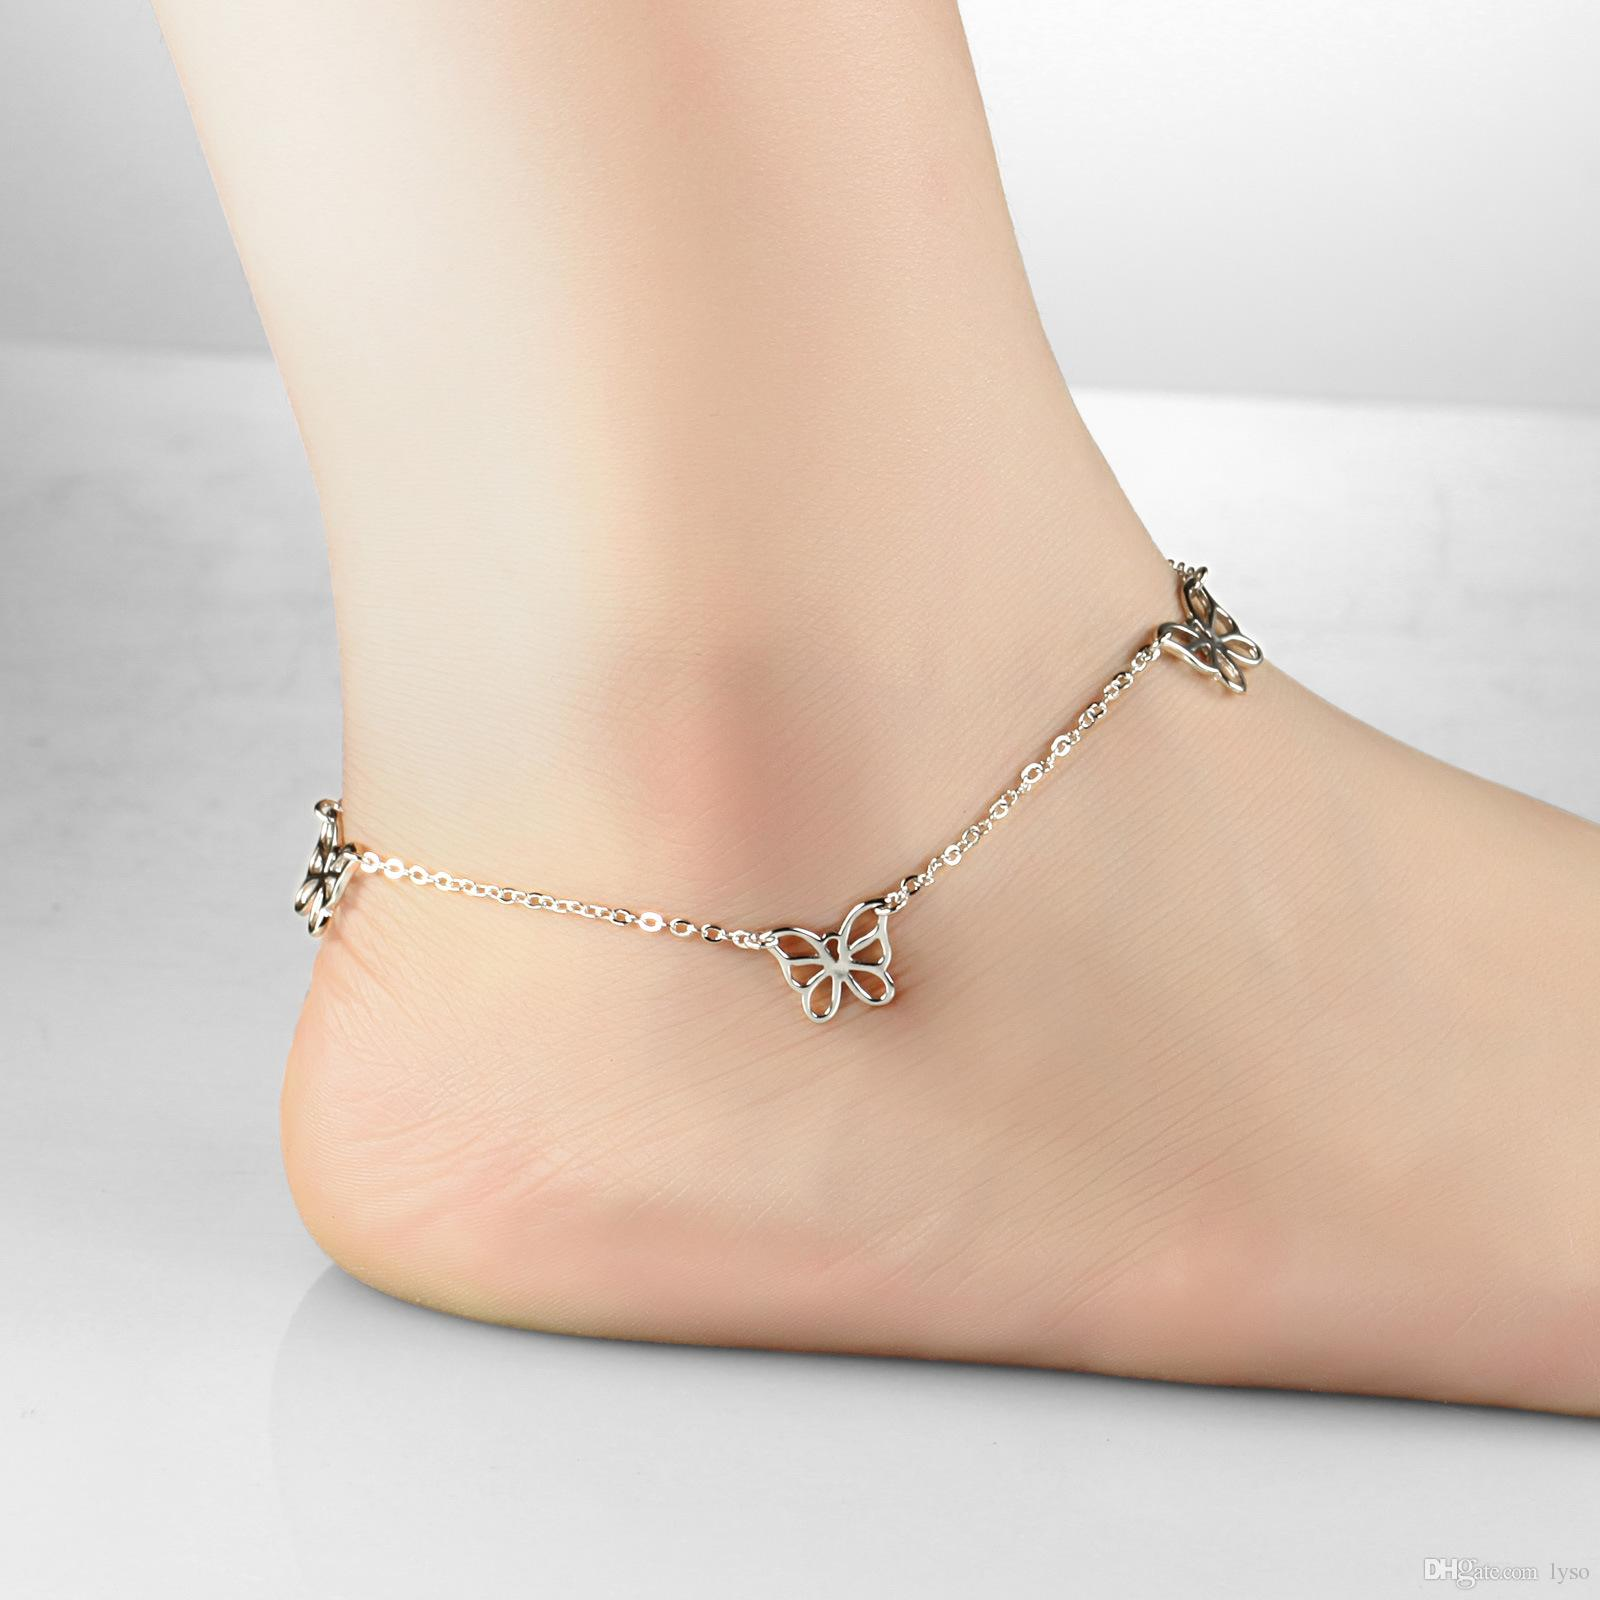 extended arrows summer arrow bohemian wholesale alloy material weight product design big new name anklet size chain width for ankles circumference gypsy foot anklets store beach ring